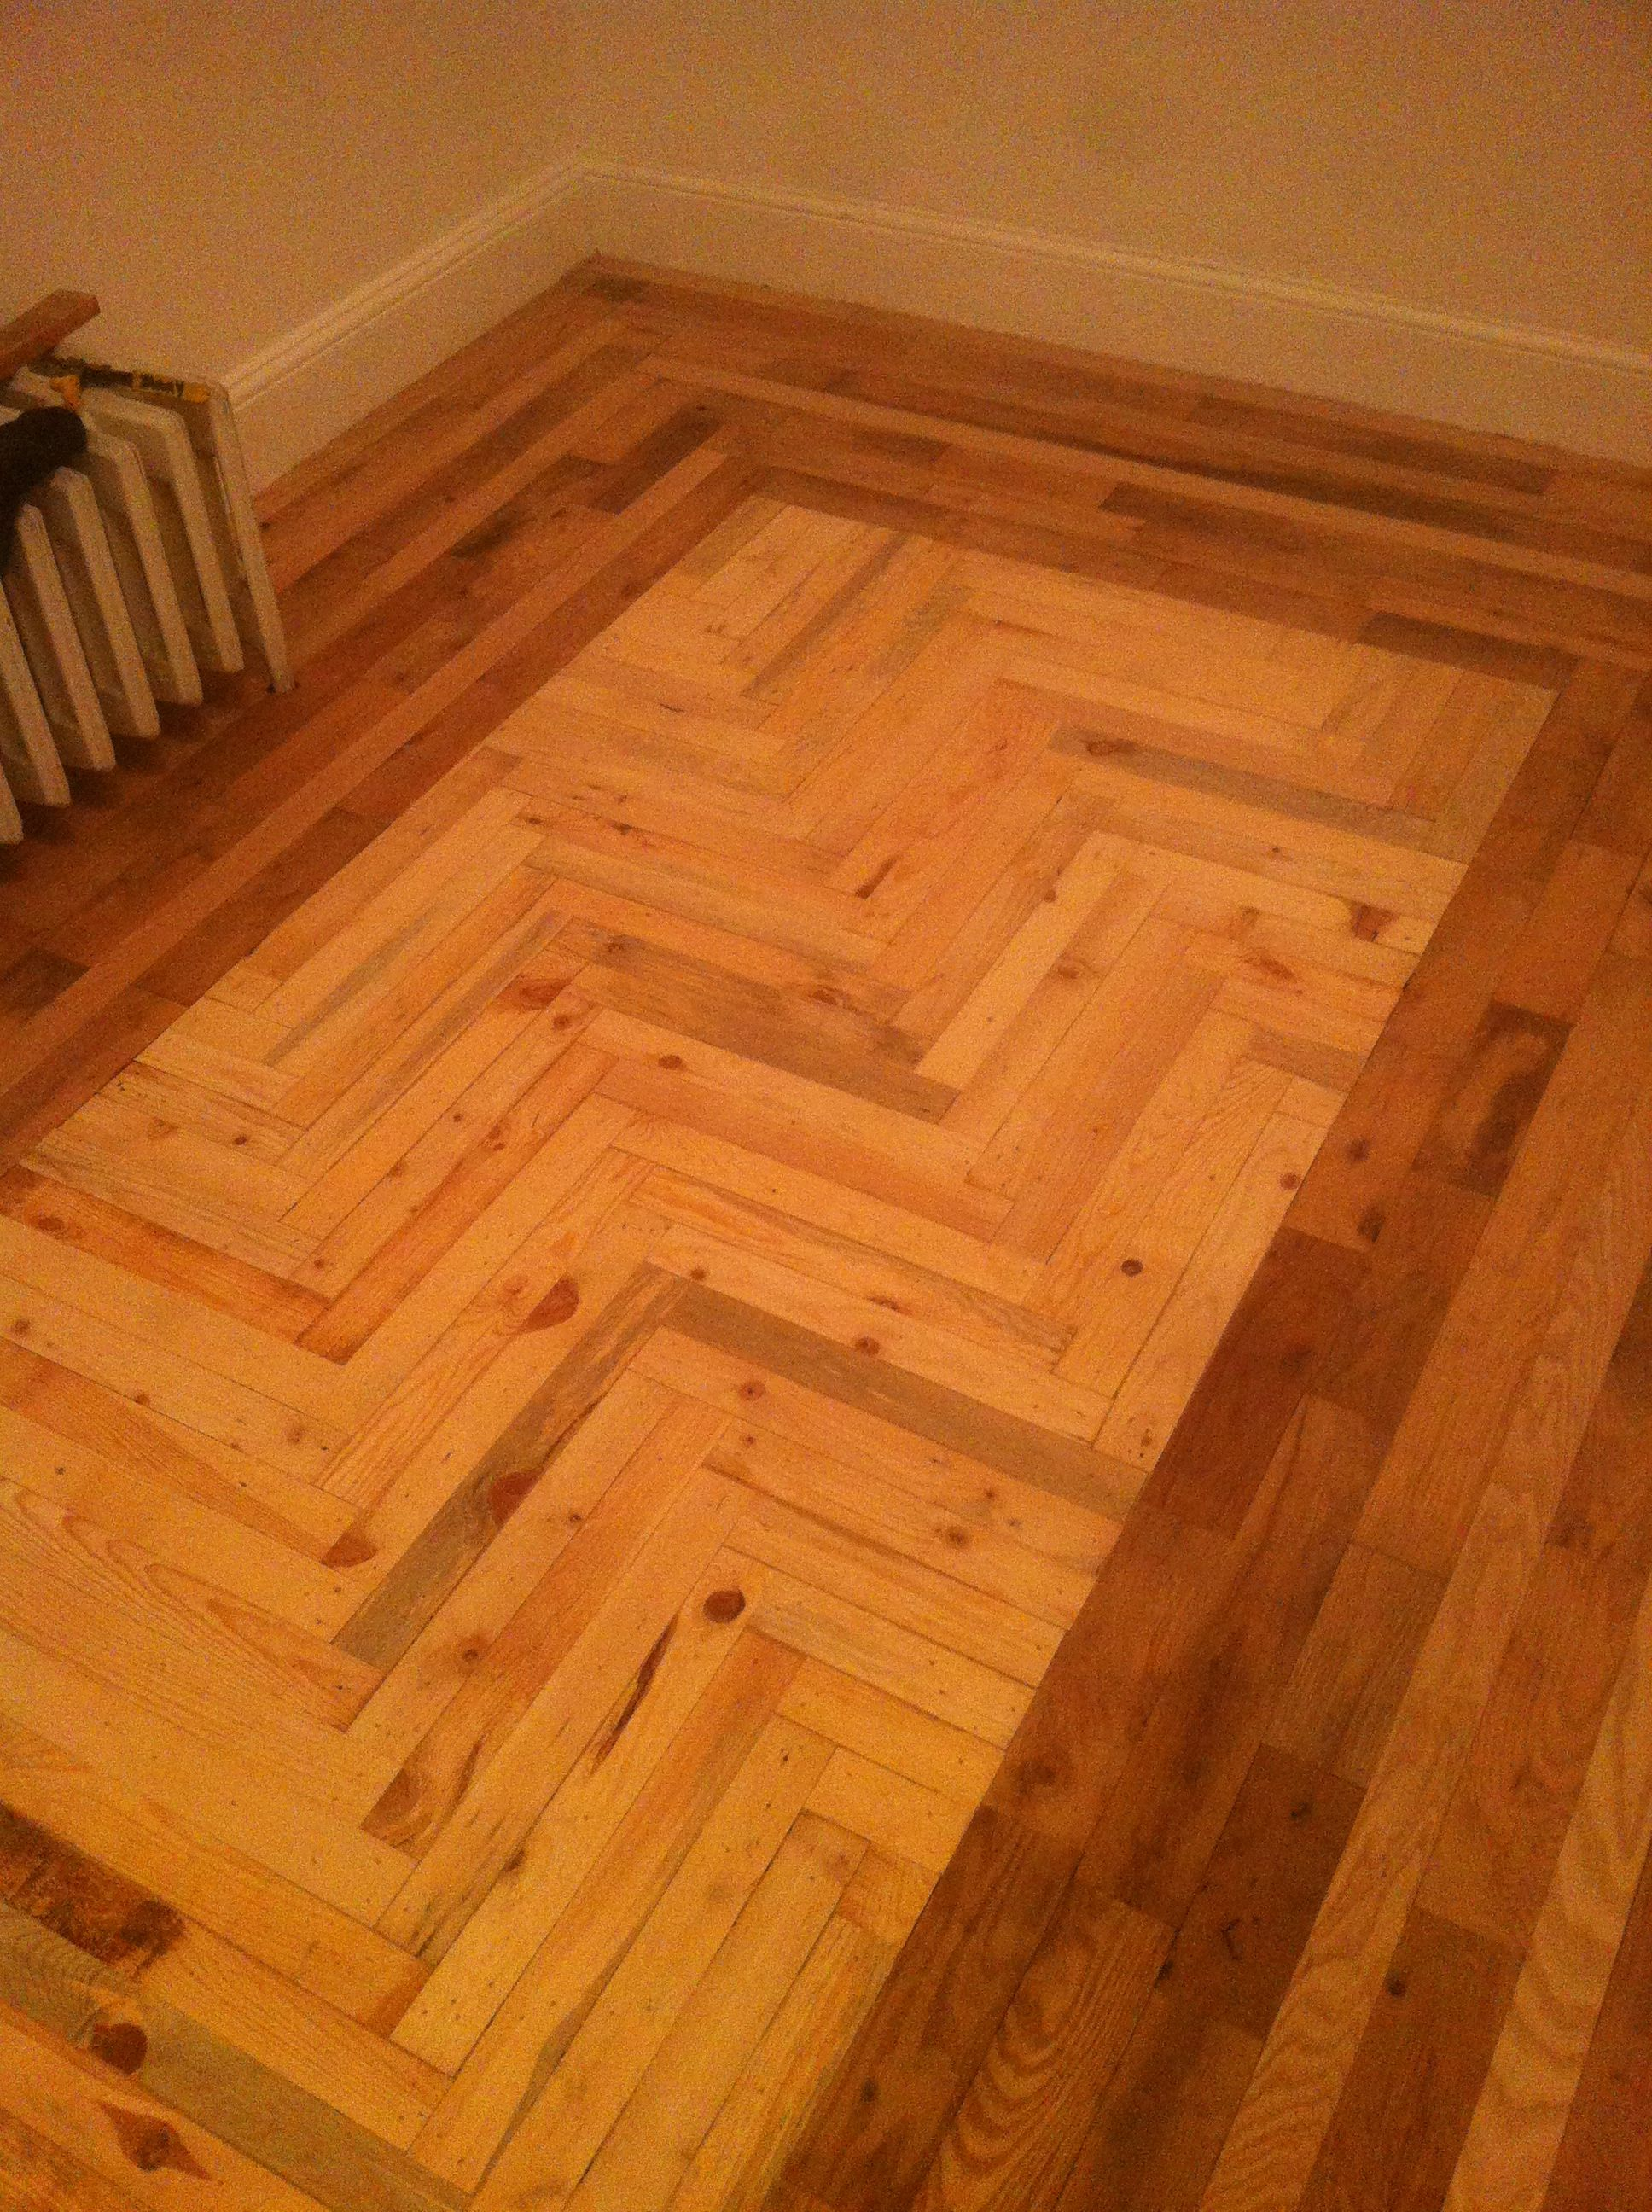 Pallet floor for the spare bedroom great ideas pinterest pallet floor for the spare bedroom pallet floorswood flooringpallet ideaspallet solutioingenieria Gallery